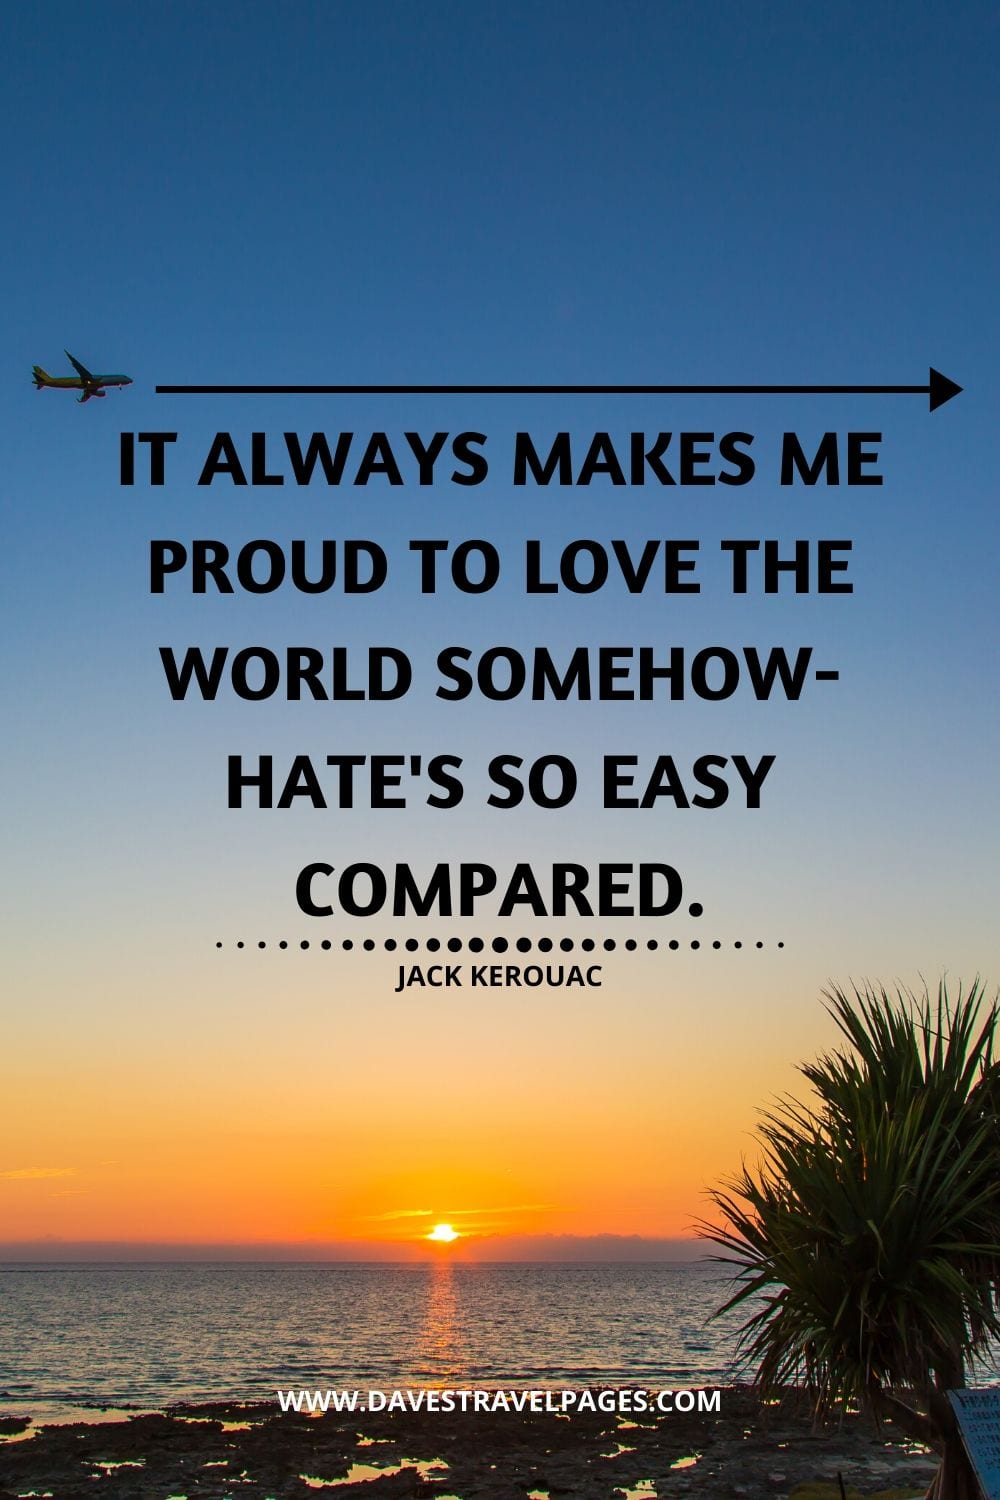 """It always makes me proud to love the world somehow- hate's so easy compared."" - Quote from Big Sur by Jack Kerouac"